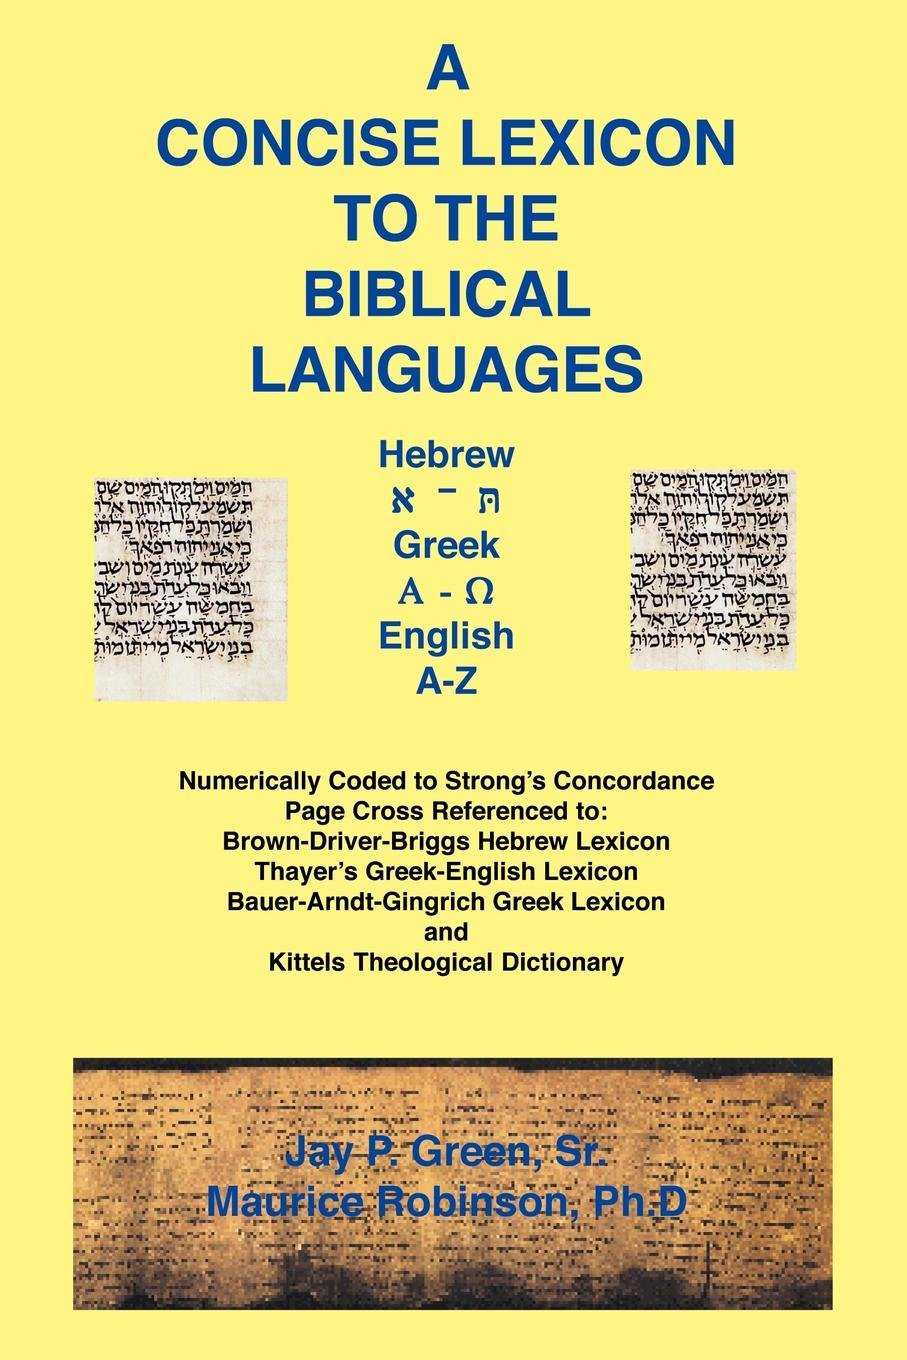 A Concise Lexicon to the Biblical Languages